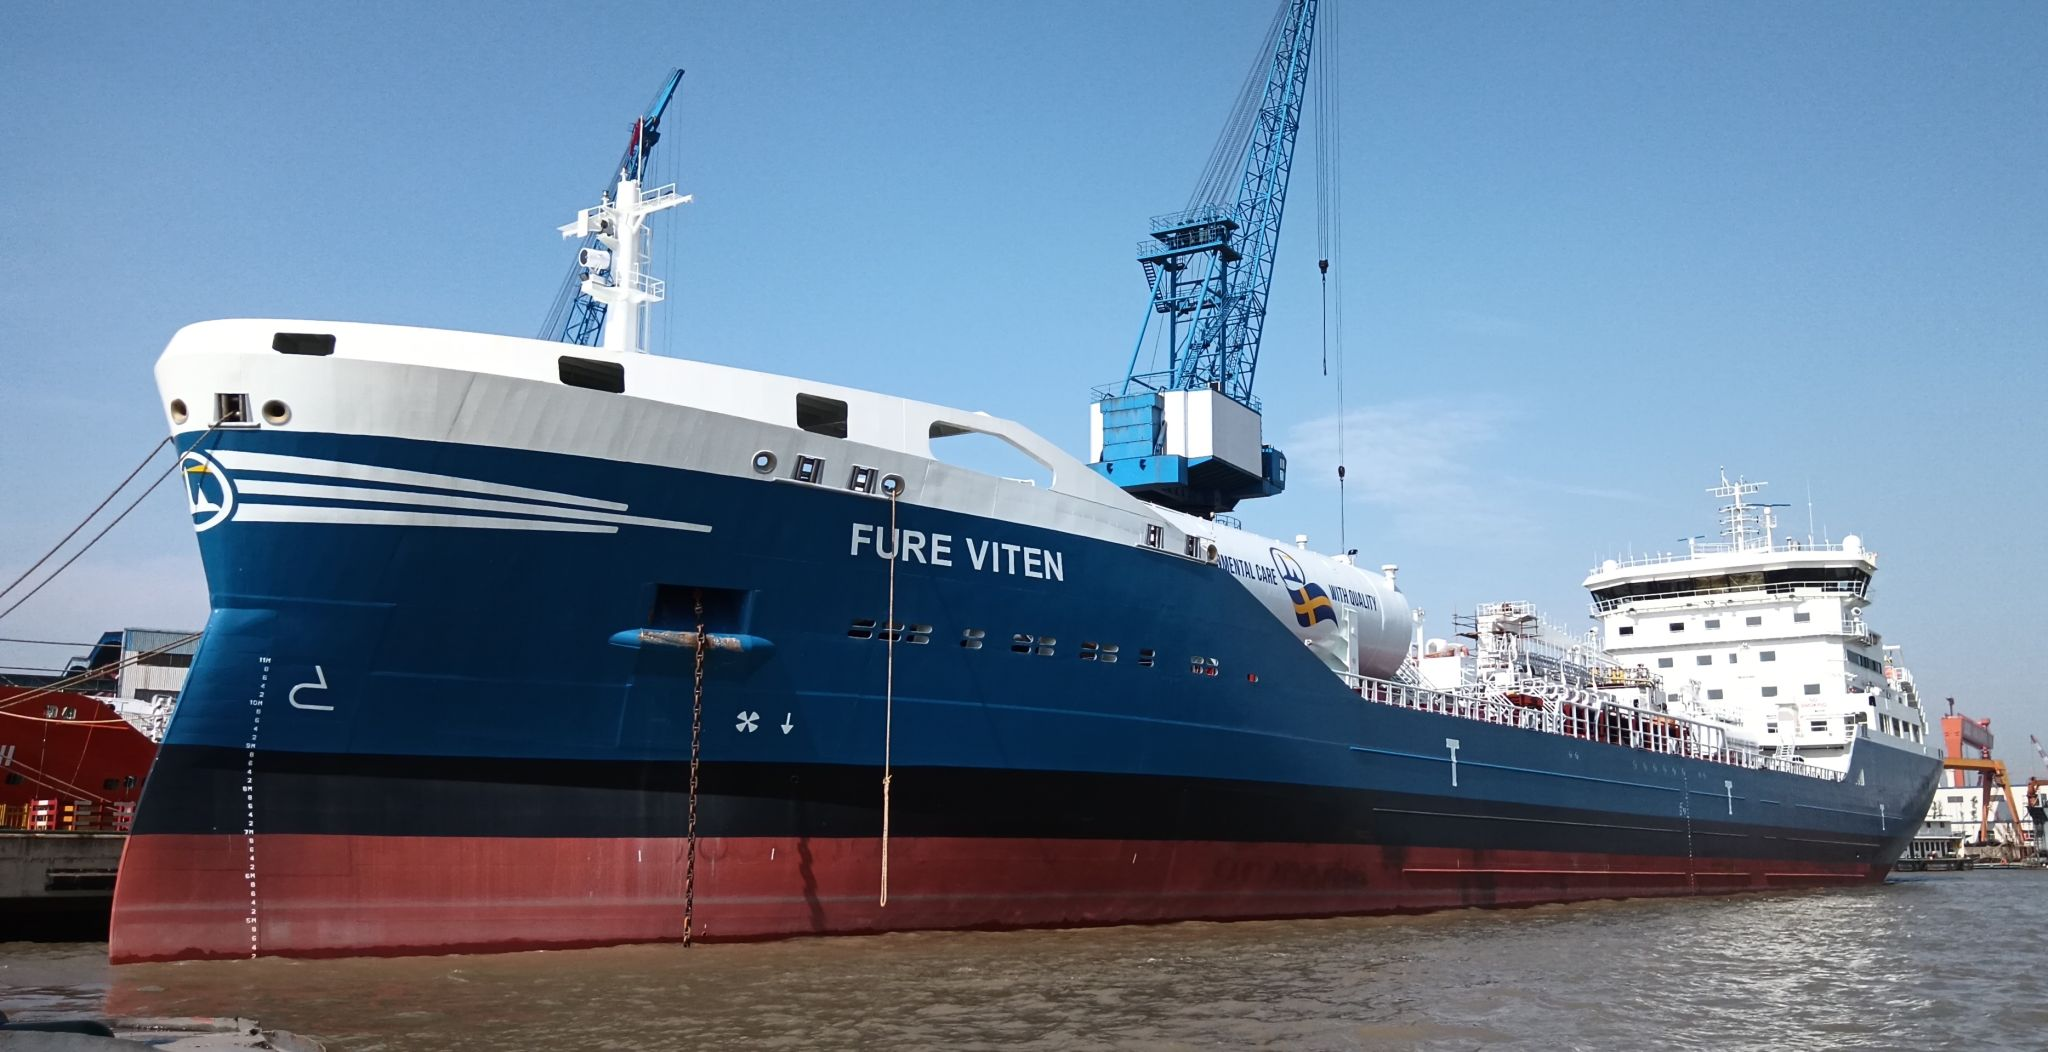 Swedish LNG-powered tanker set for maiden voyage to Europe